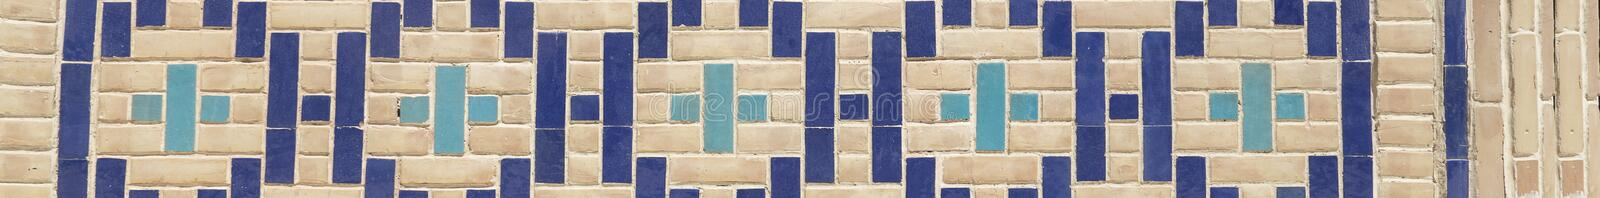 Close up pattern of eastern, arabic ceramic, porcelain mosaic. Tiled background, oriental ornaments from Uzbekistan.  royalty free stock photo